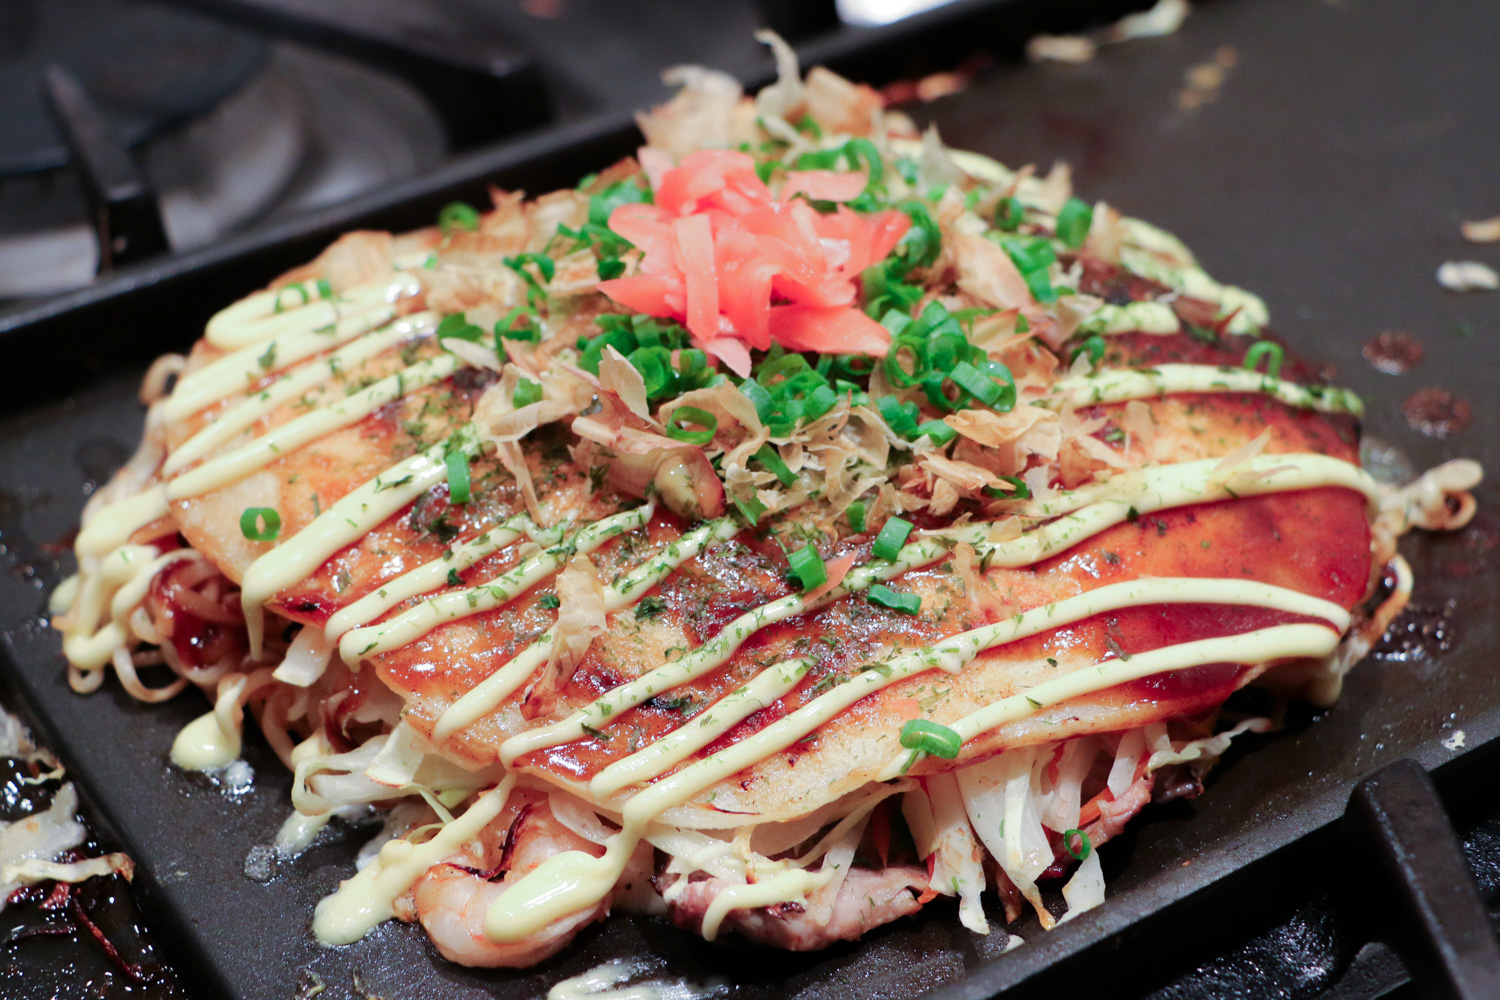 Okonomiyaki all dressed up on the grill